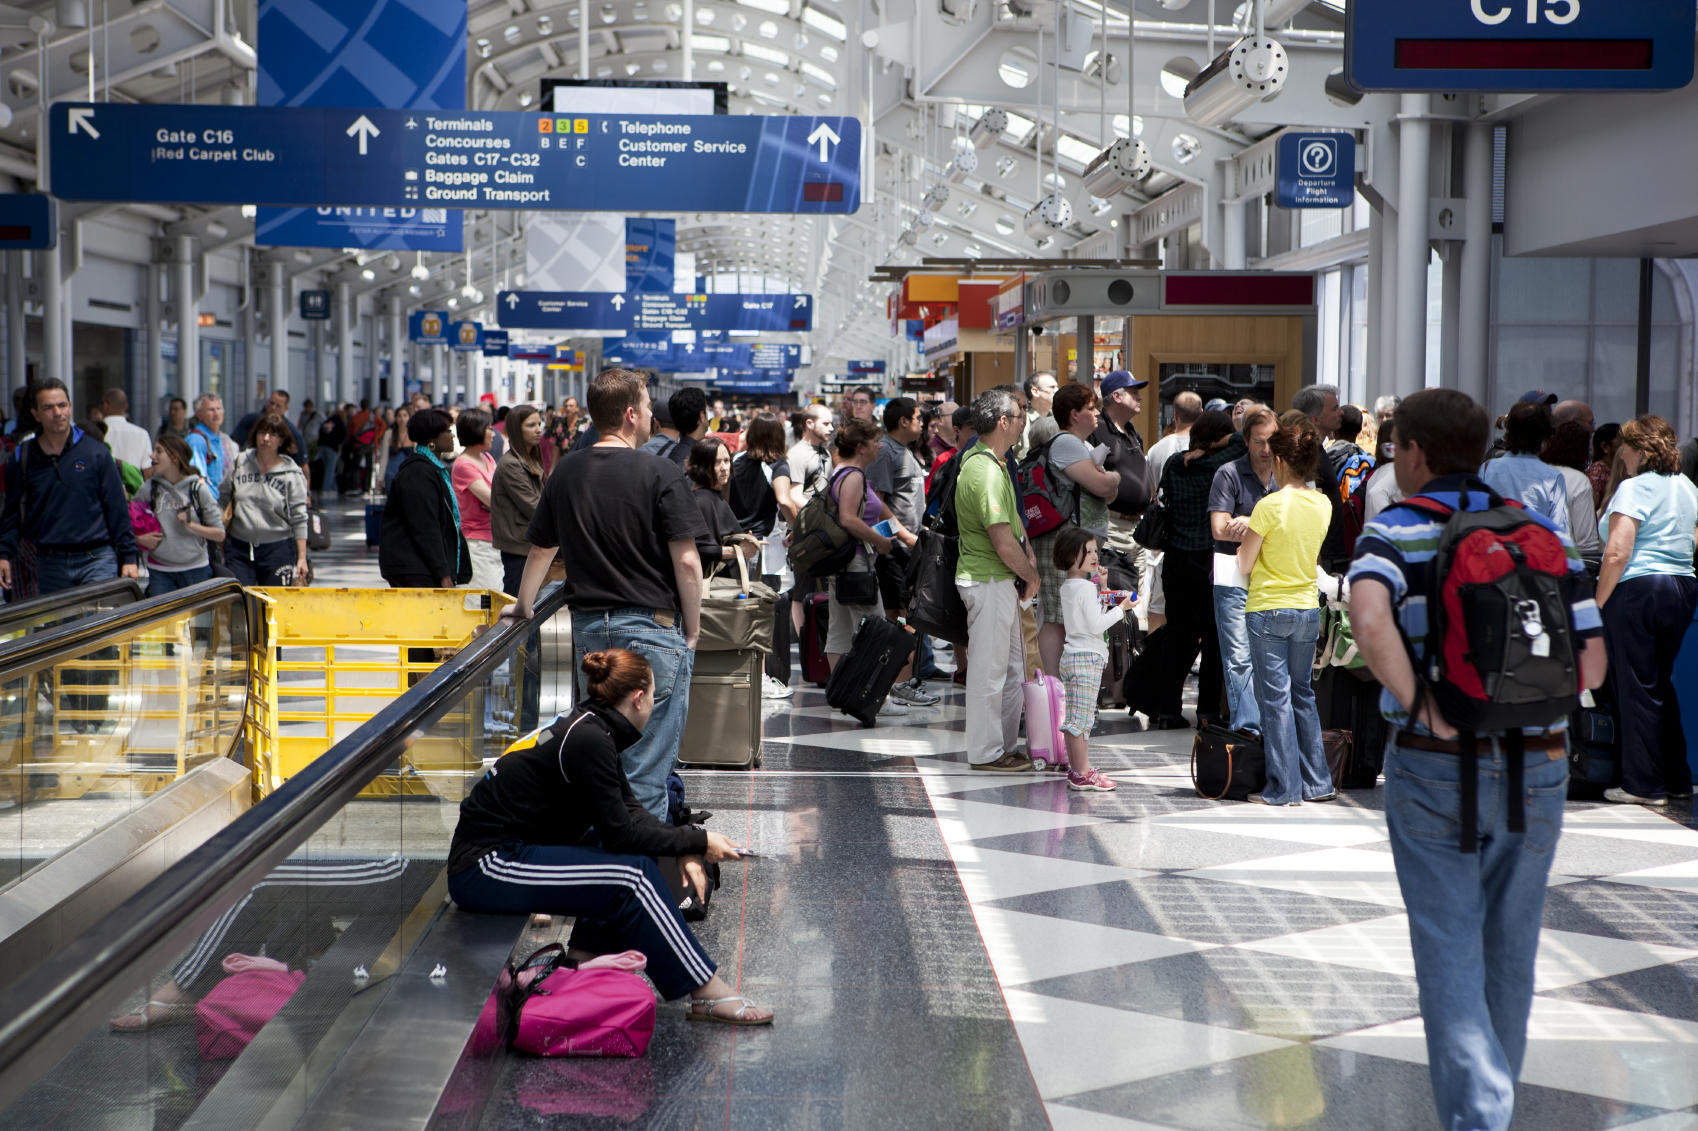 Chicago O'Hare Airport during Summer Travel Season